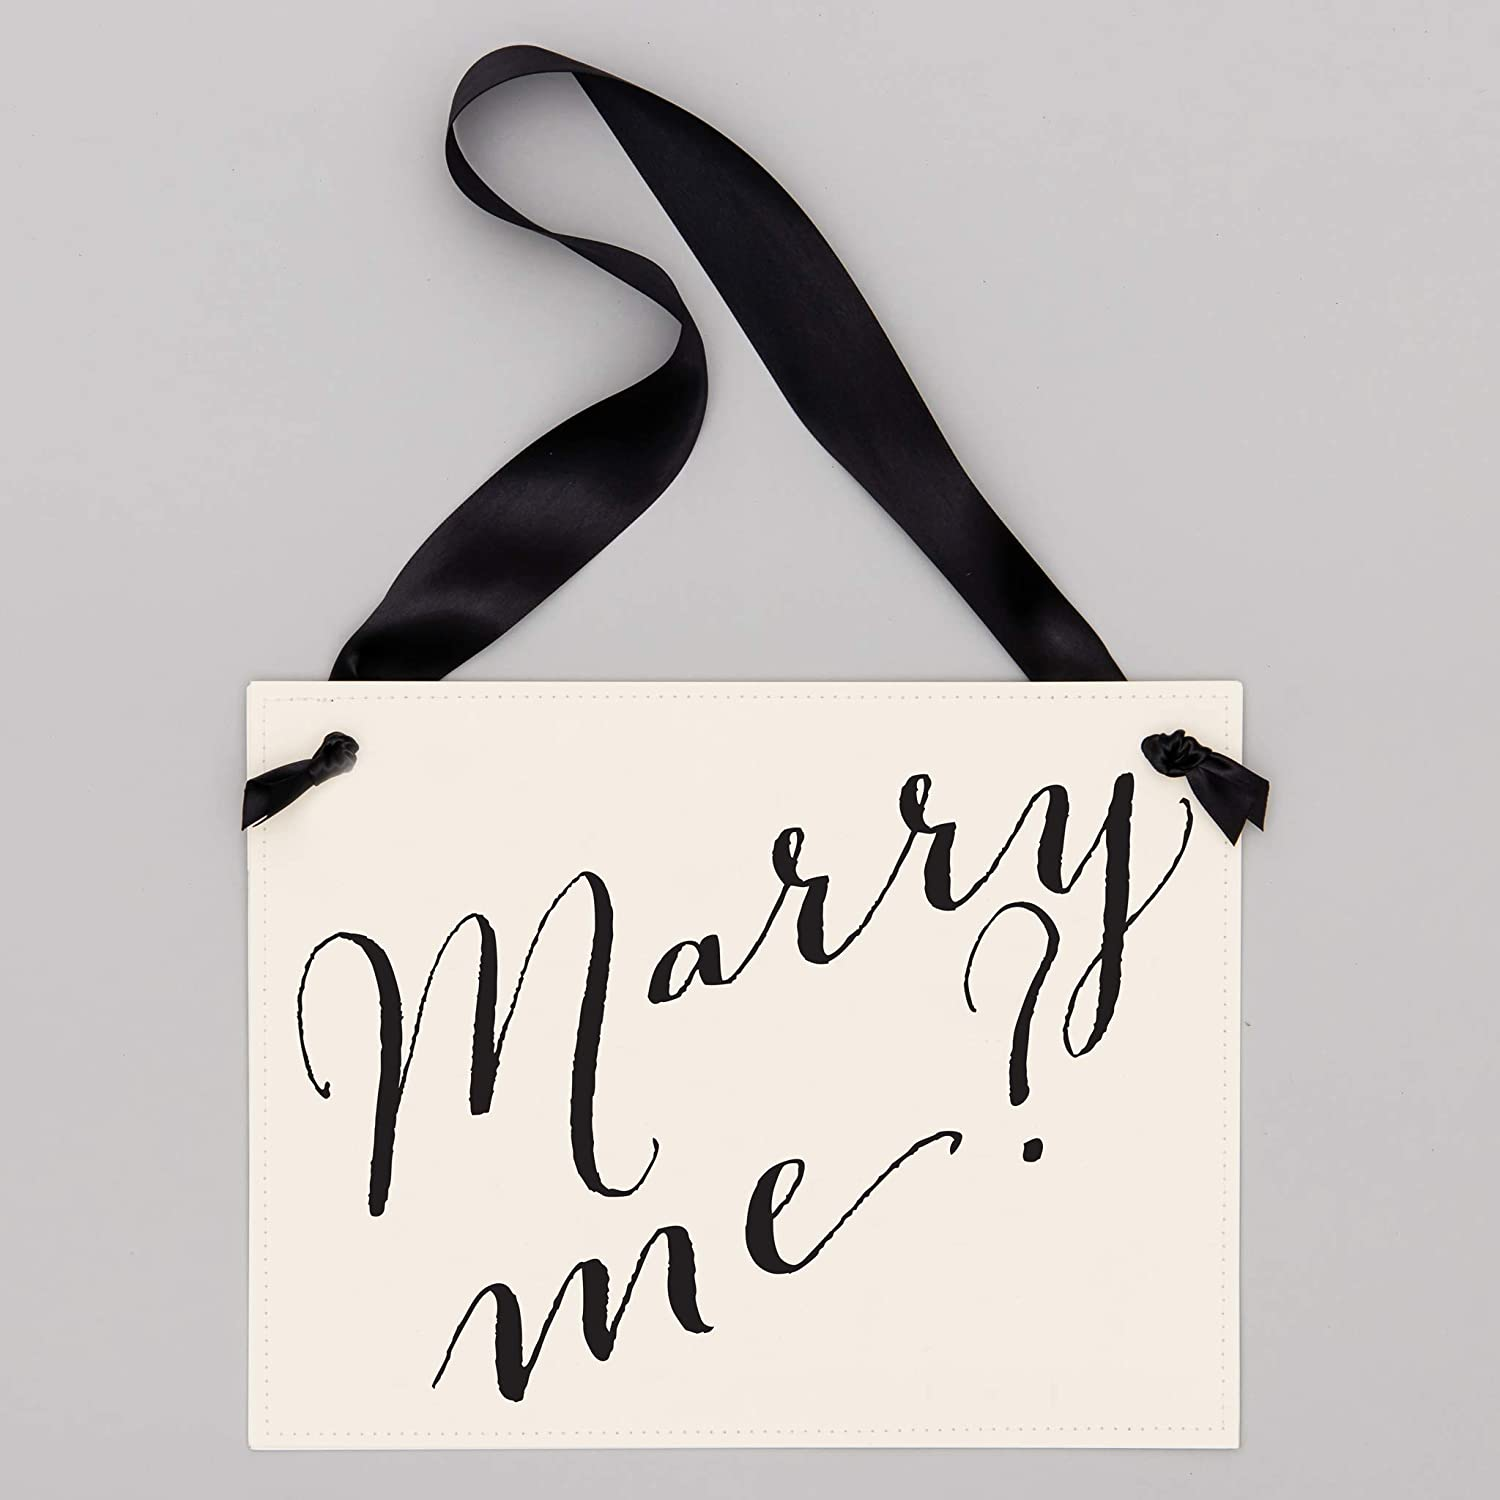 on Back Handcrafted Engagement Banner Prop Ribbon on Ivory Cardstock Double SidedMarry Me? +I Said Yes Black ink Marry Me Proposal Sign